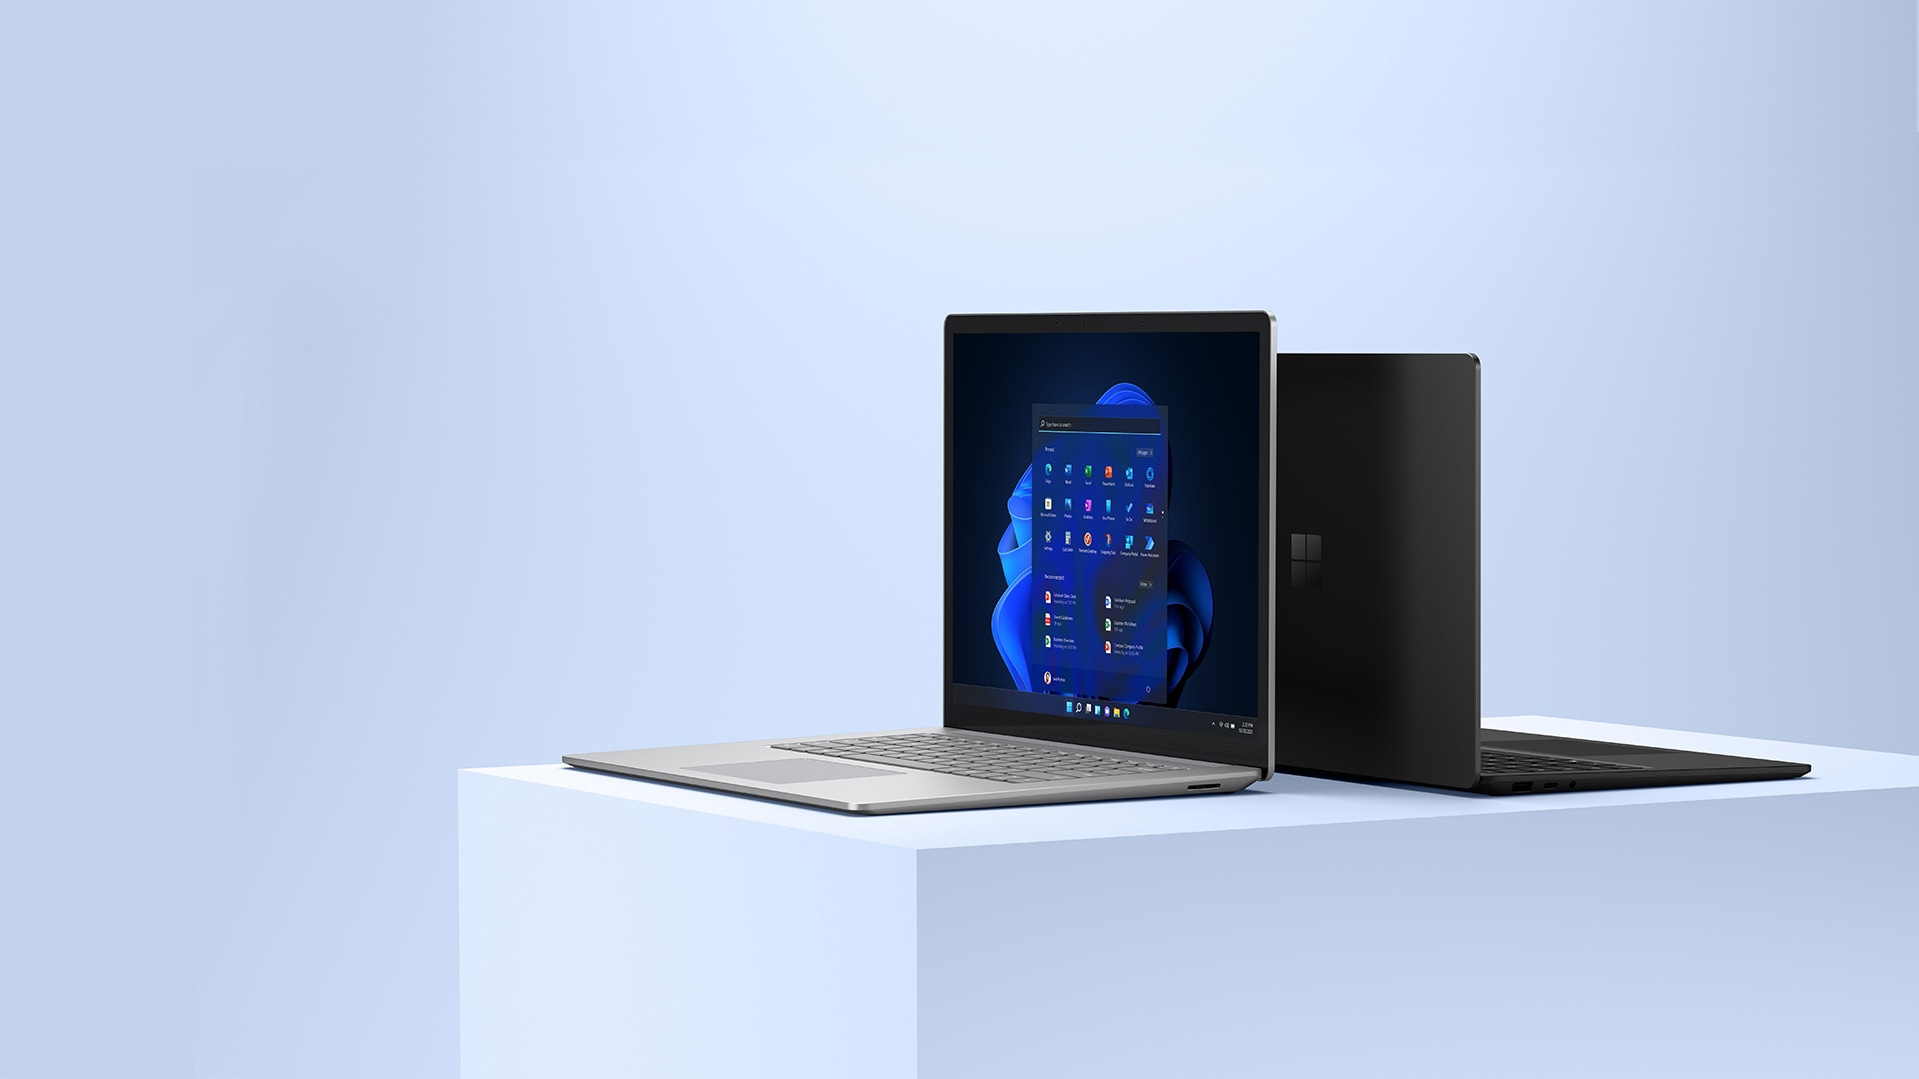 15-inch Surface Laptop 4 in Platinum with screen facing outward. 13.5-inch Surface Laptop 4 in Black is observed back-to-back with 15-inch size